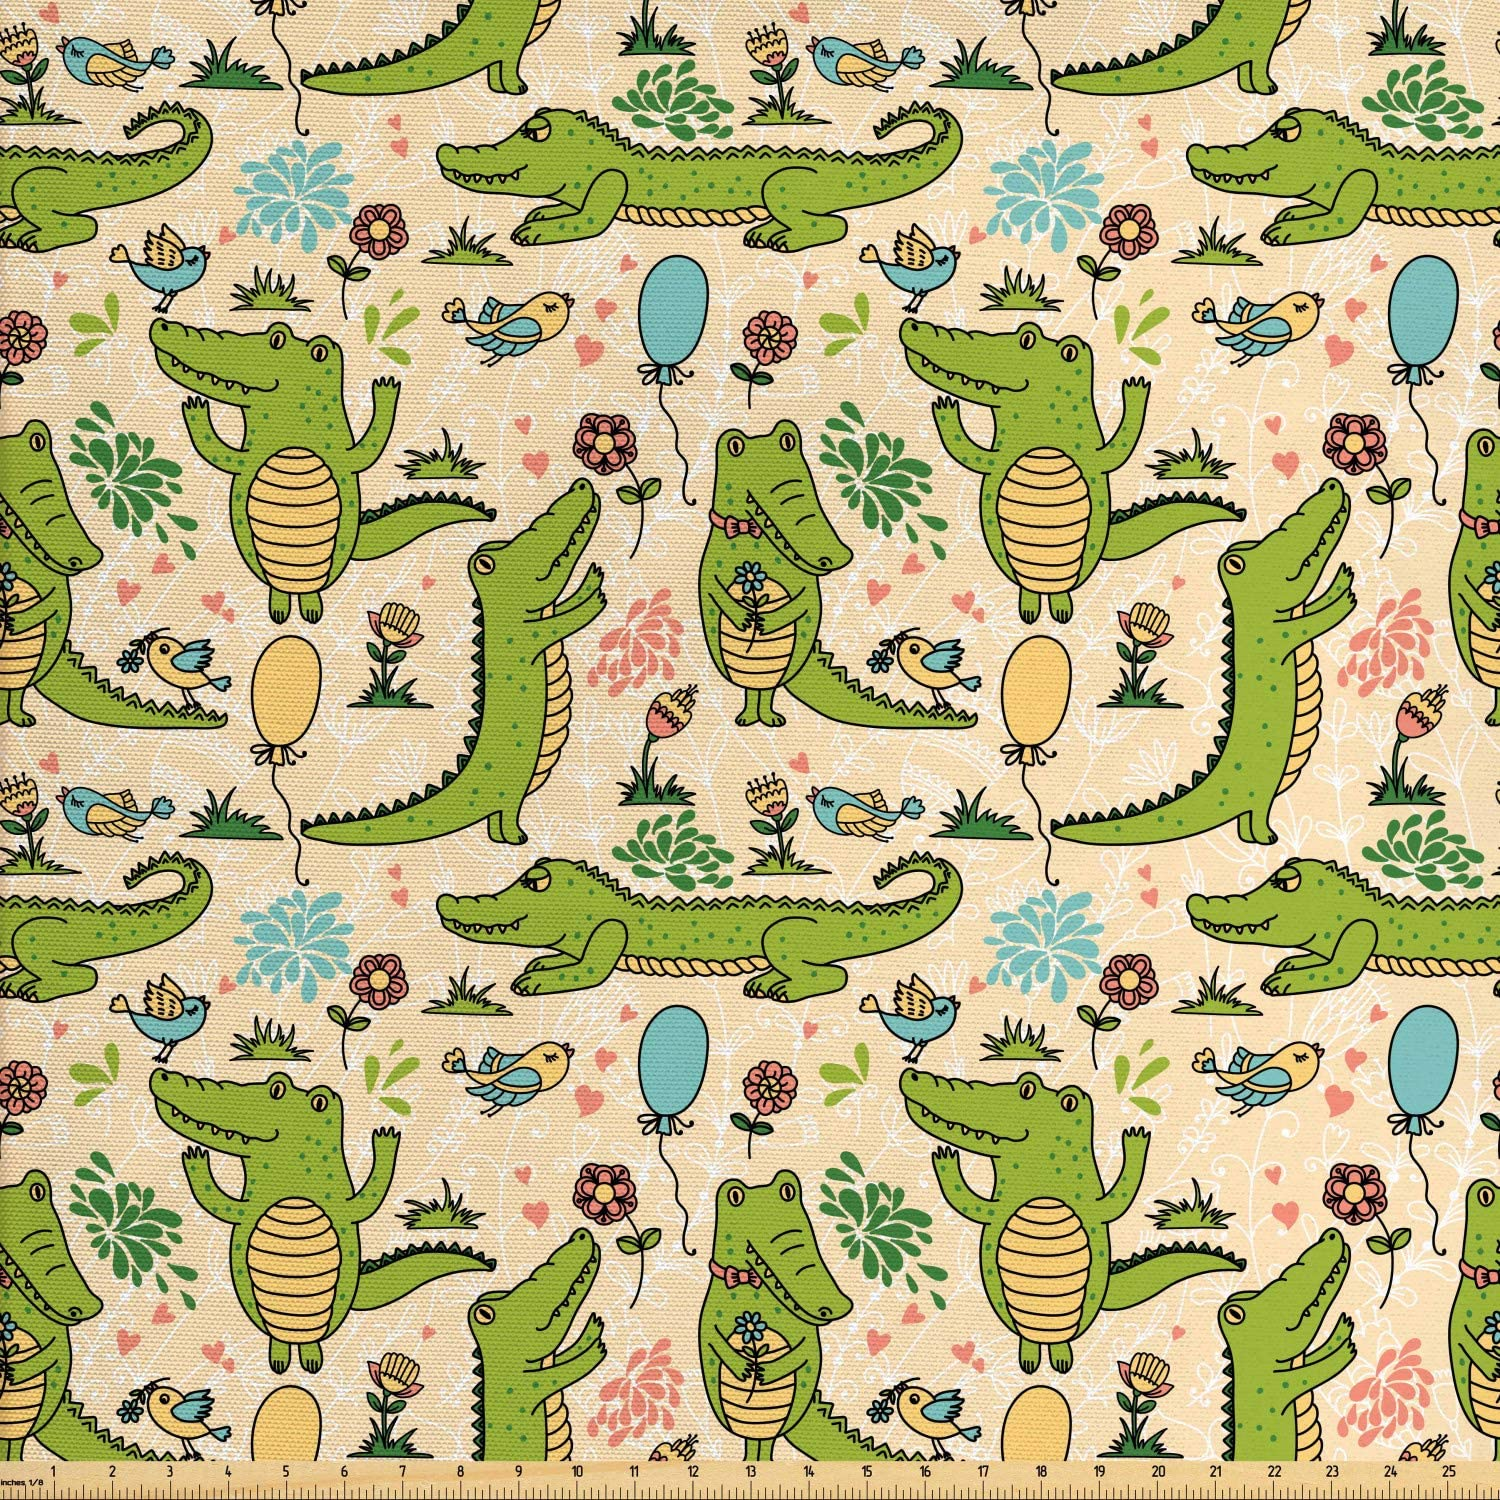 Lunarable Alligator Fabric by The Yard, Happy Party with Dancing Crocodiles Flower Field and Balloons Birthday Cartoon, Decorative Fabric for Upholstery and Home Accents, 3 Yards, Green Peach